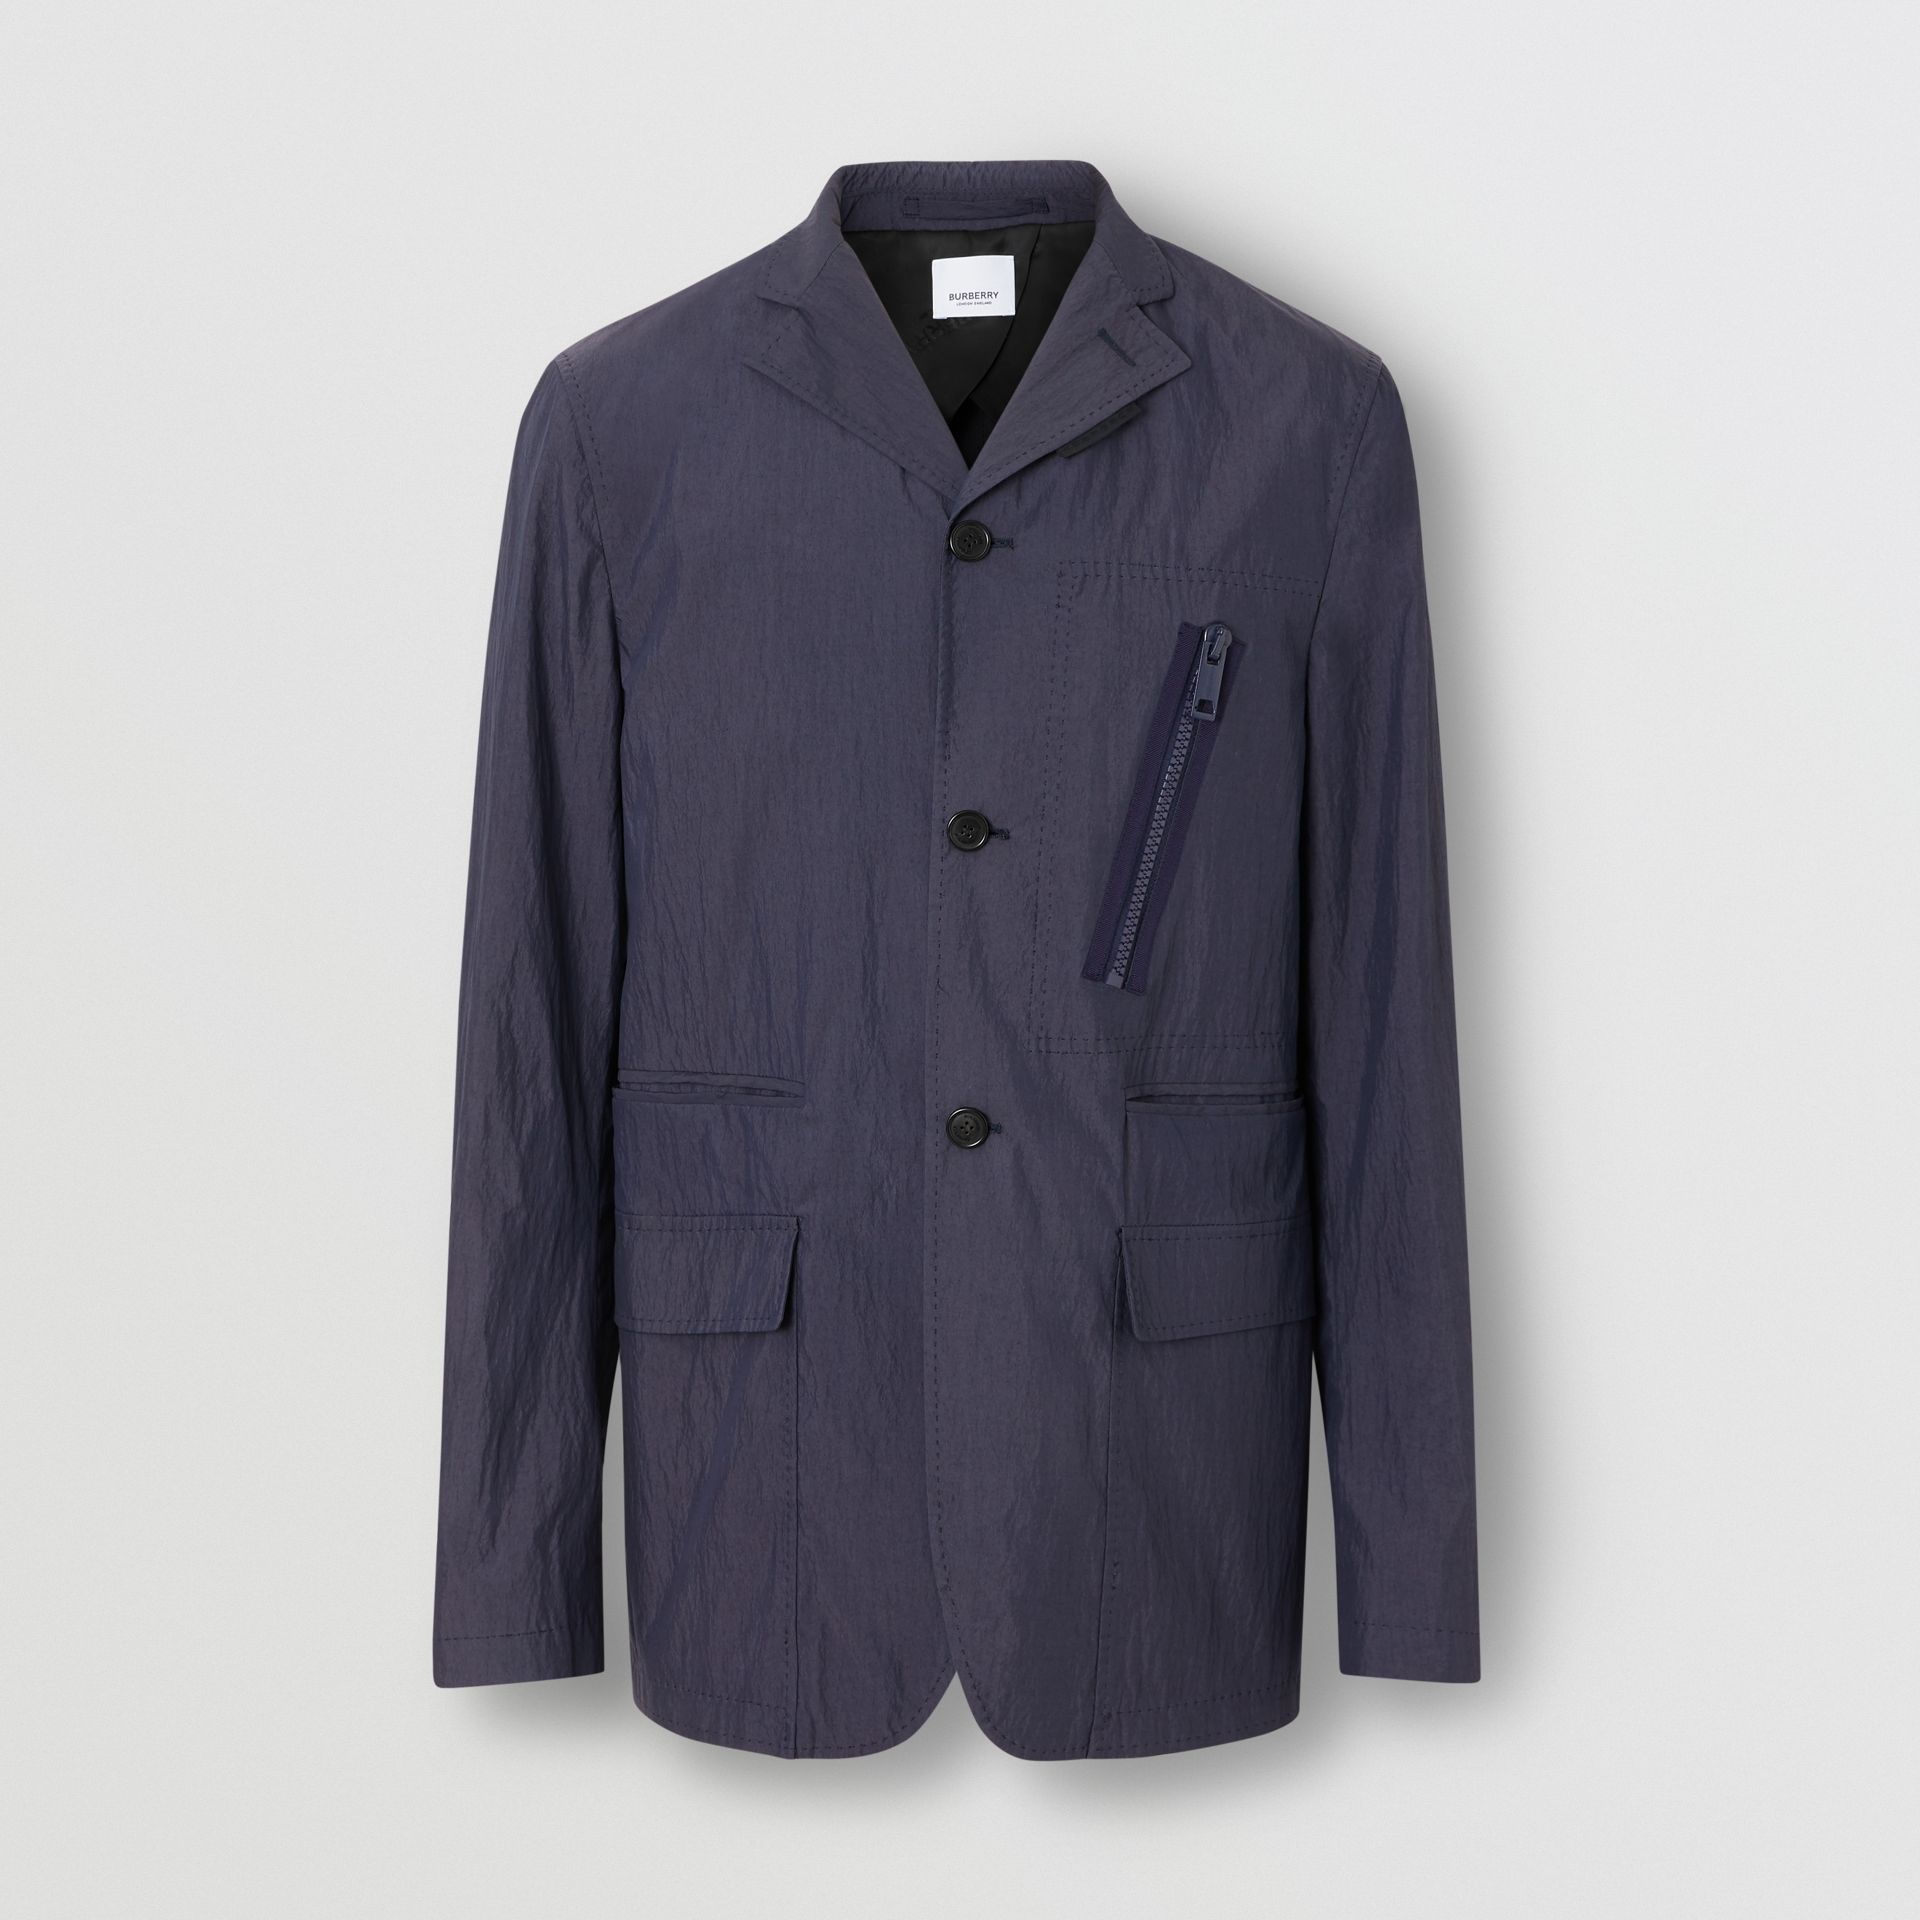 Crinkled Cotton Blend Tailored Jacket in Navy - Men | Burberry - gallery image 3